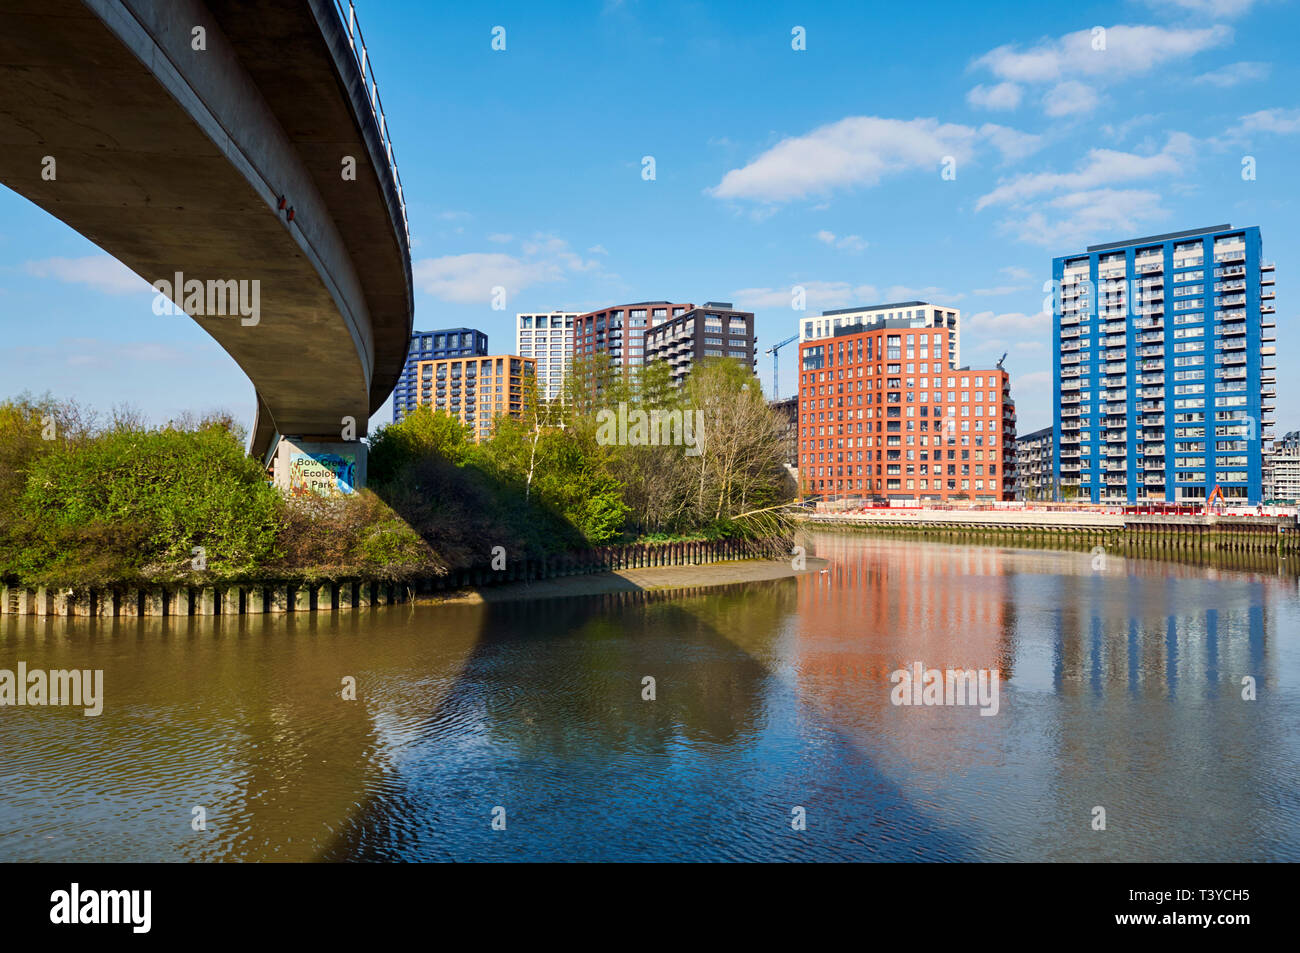 New apartment buildings at Bow Creek, Poplar, London Docklands, UK,  with Bow Creek Ecology Park and the Docklands Light Railway flyover. - Stock Image